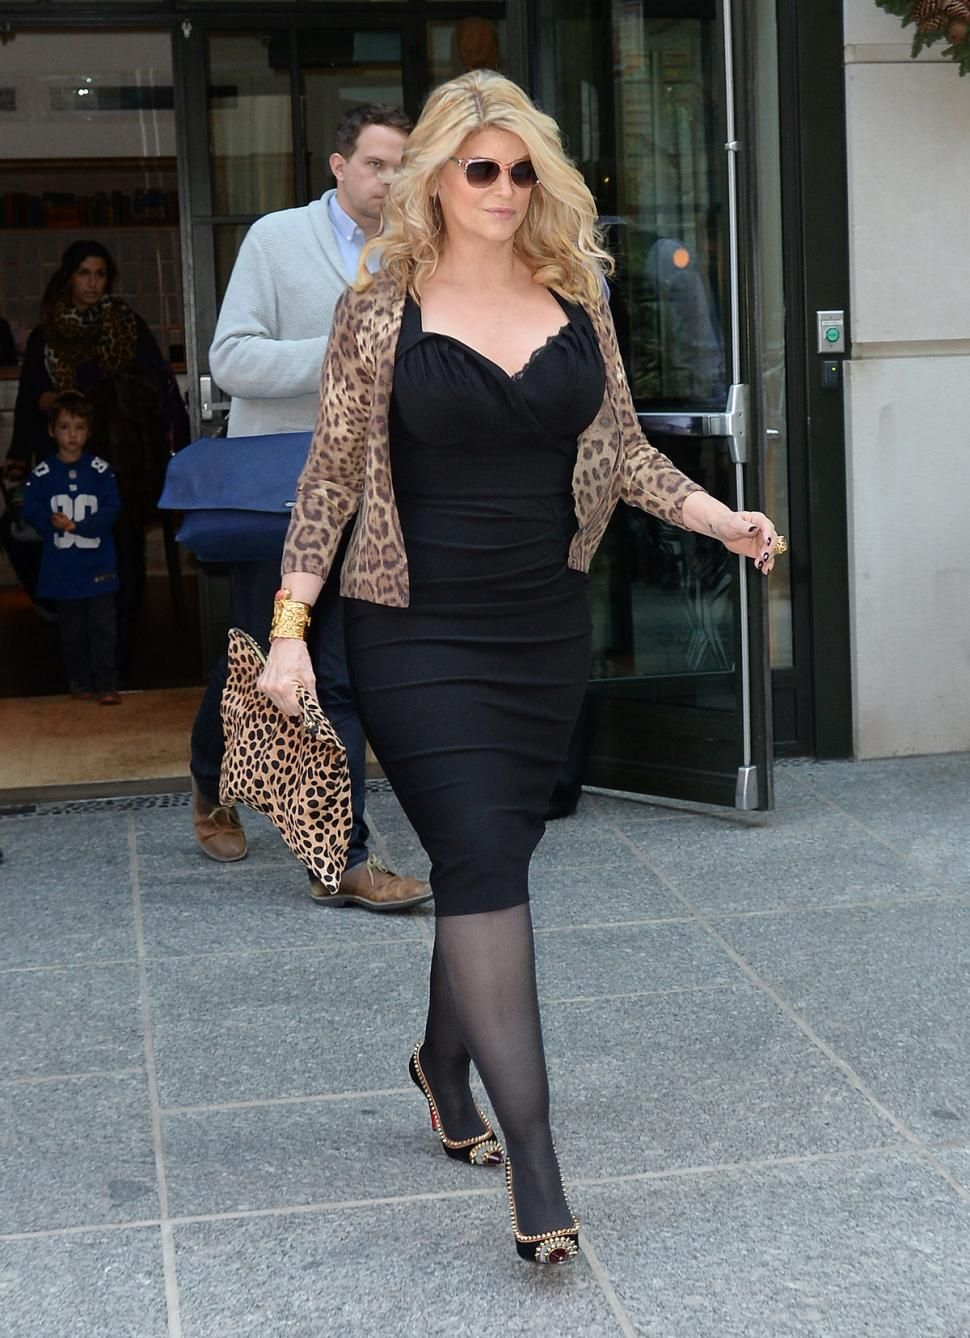 Kirstie Alley Pantyhose Size